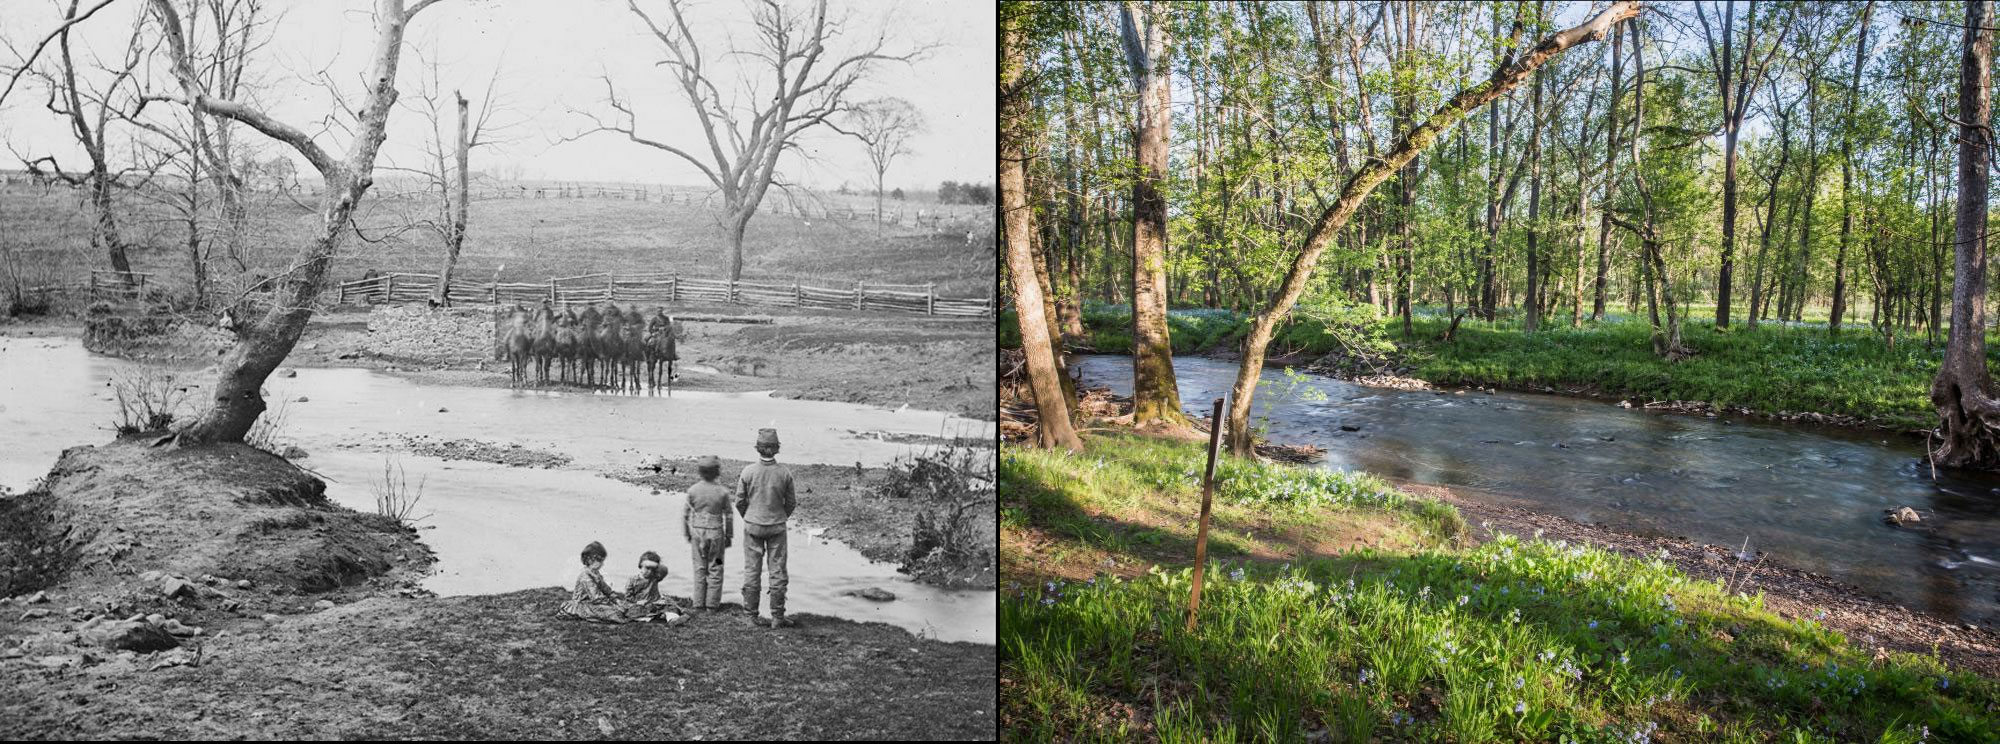 civil-war-then-and-now